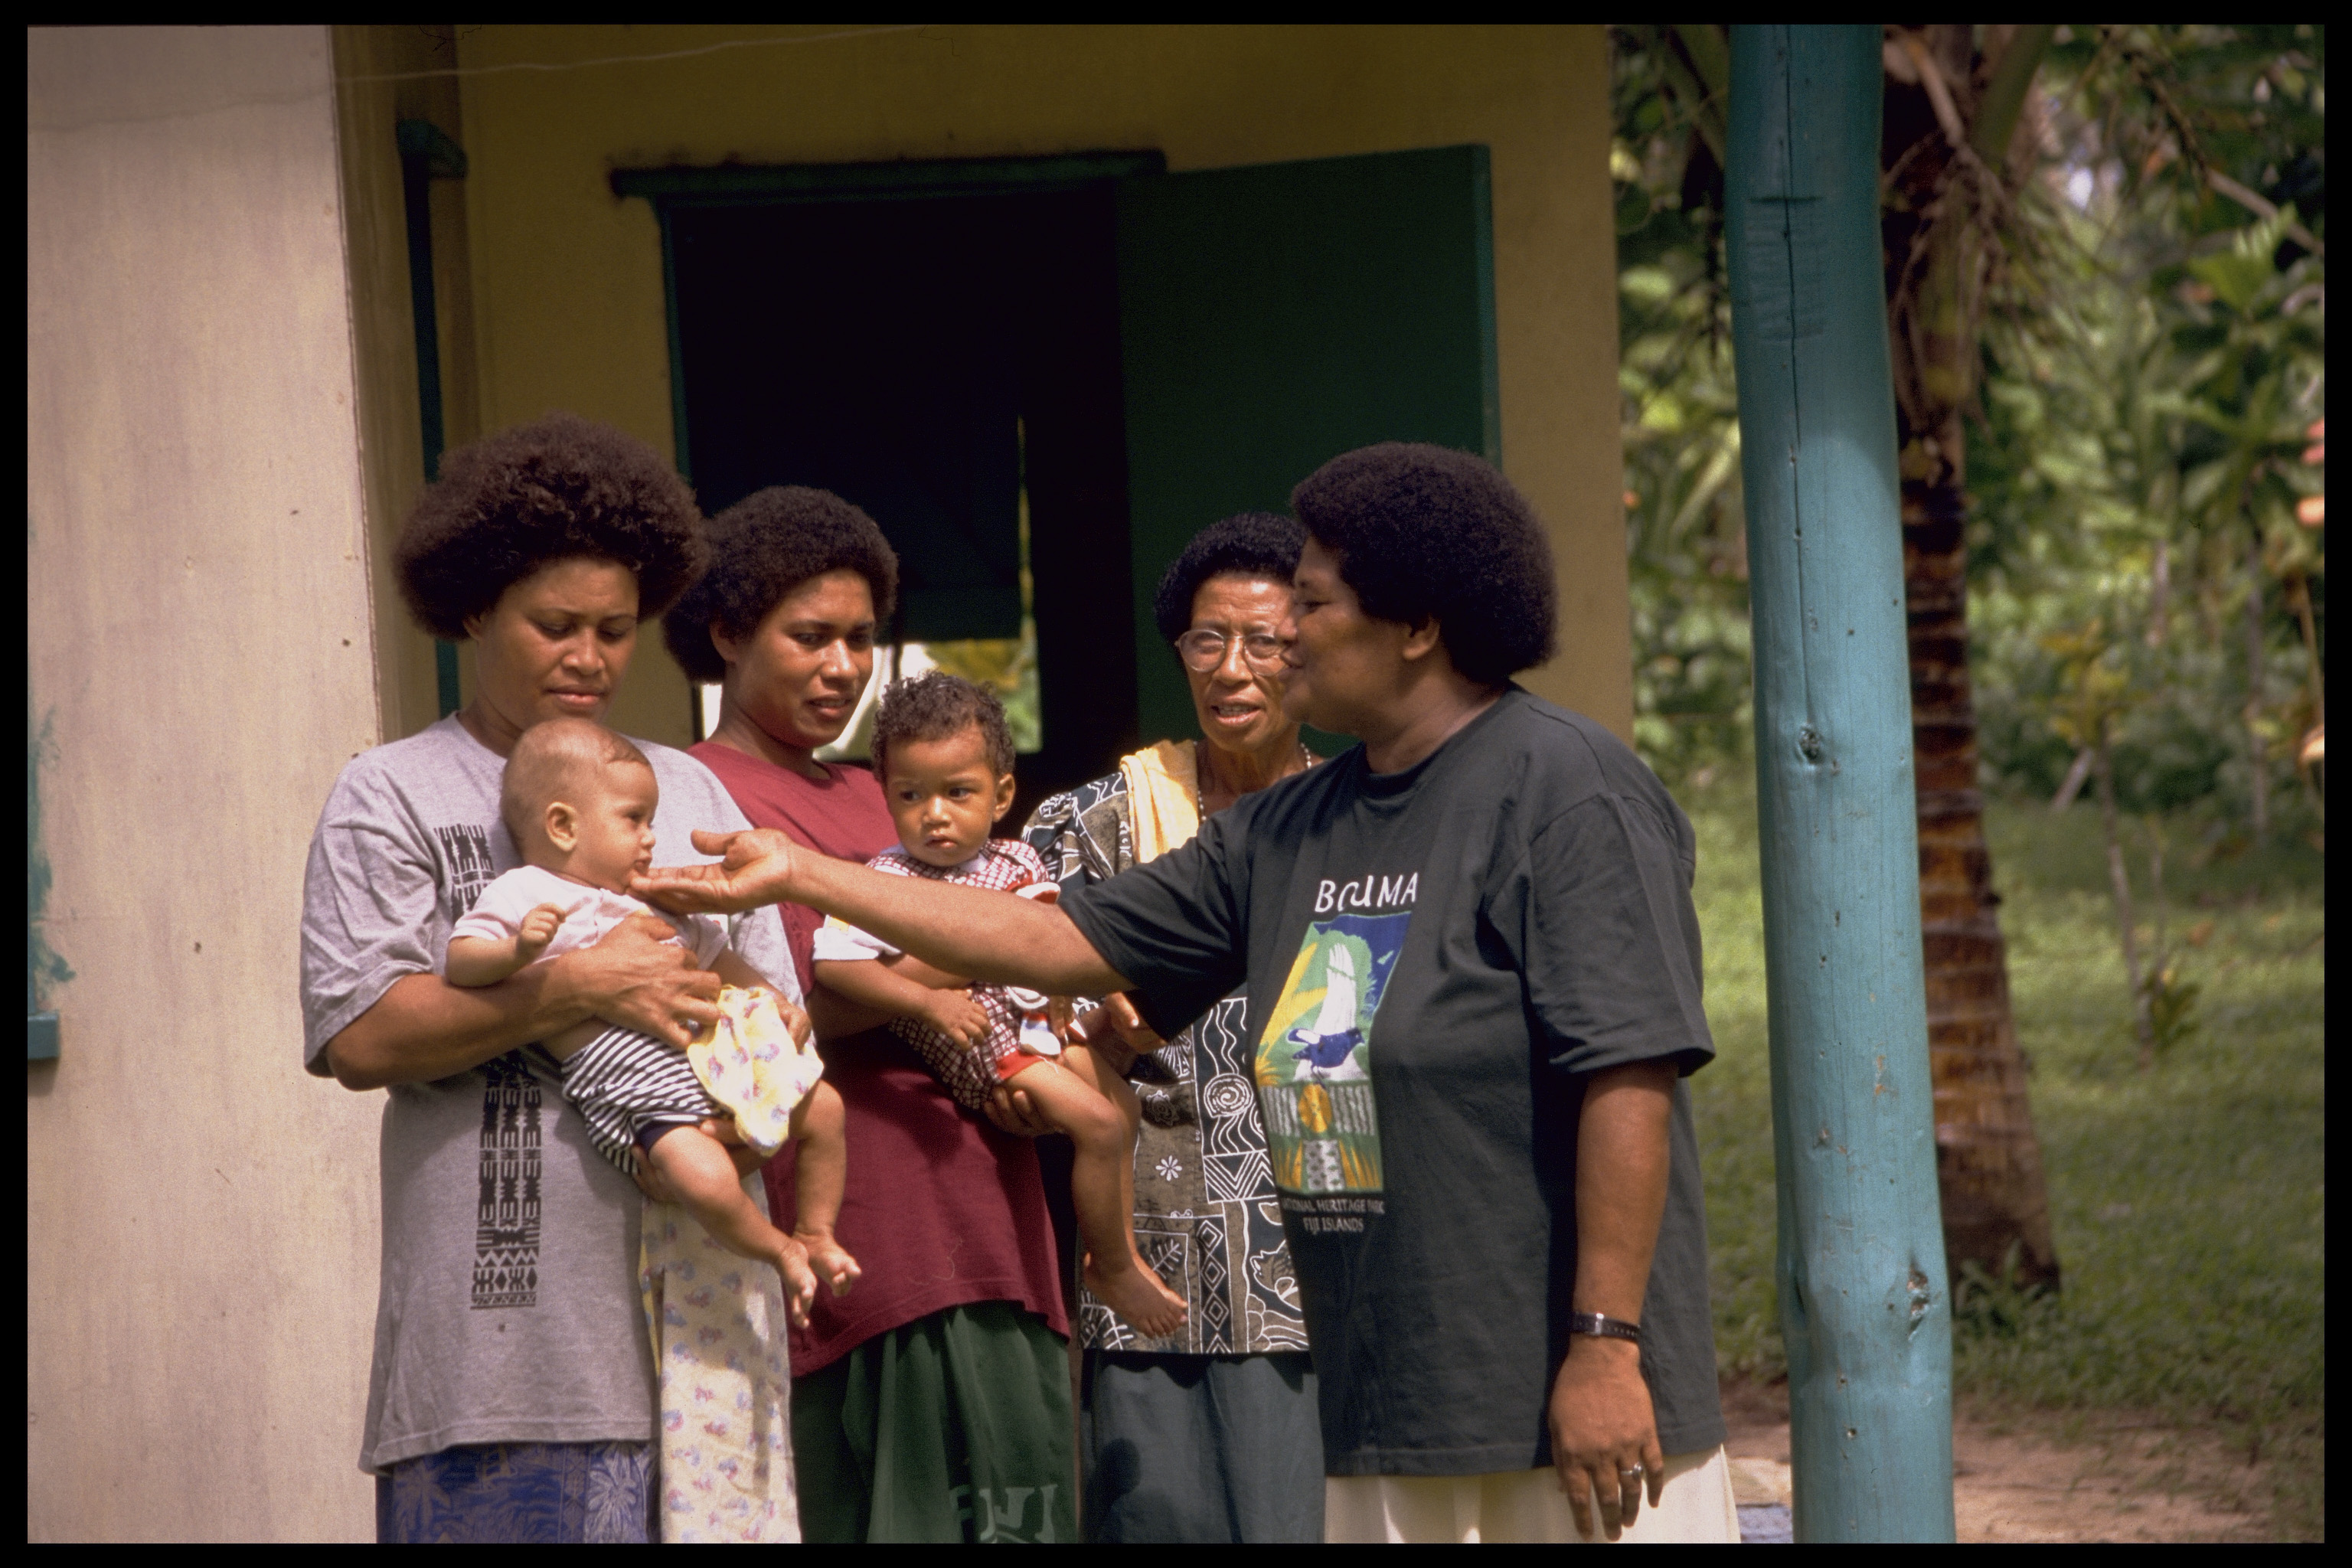 A health worker discusses babies' health with mothers, Fiji. Photo by Peter Davis for AusAID